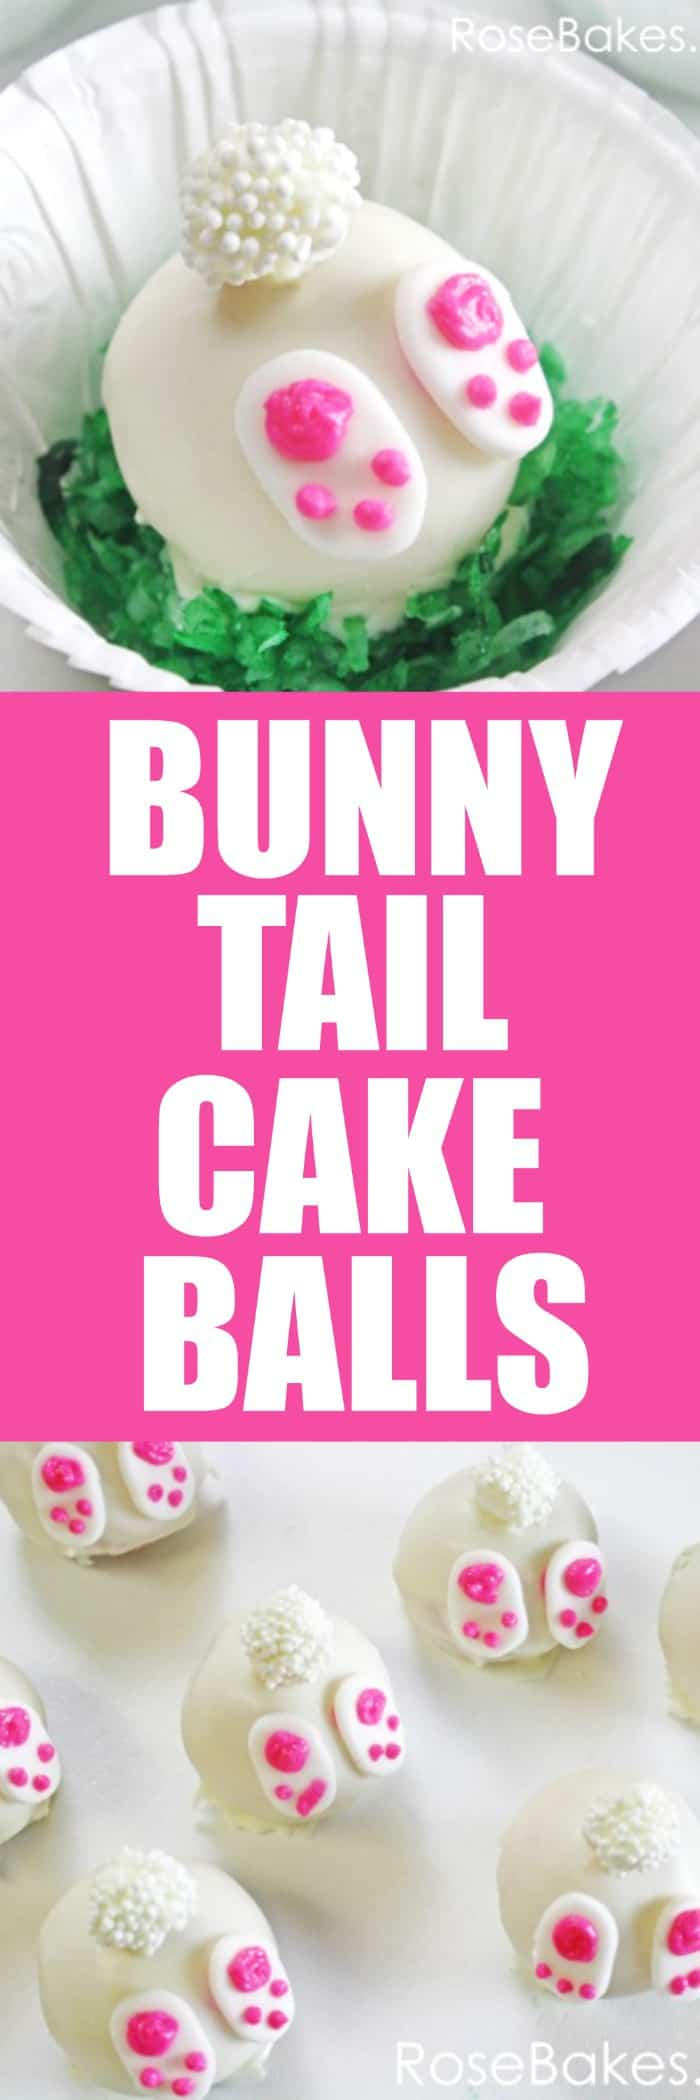 How To Make Bunny Tail Cake Pops